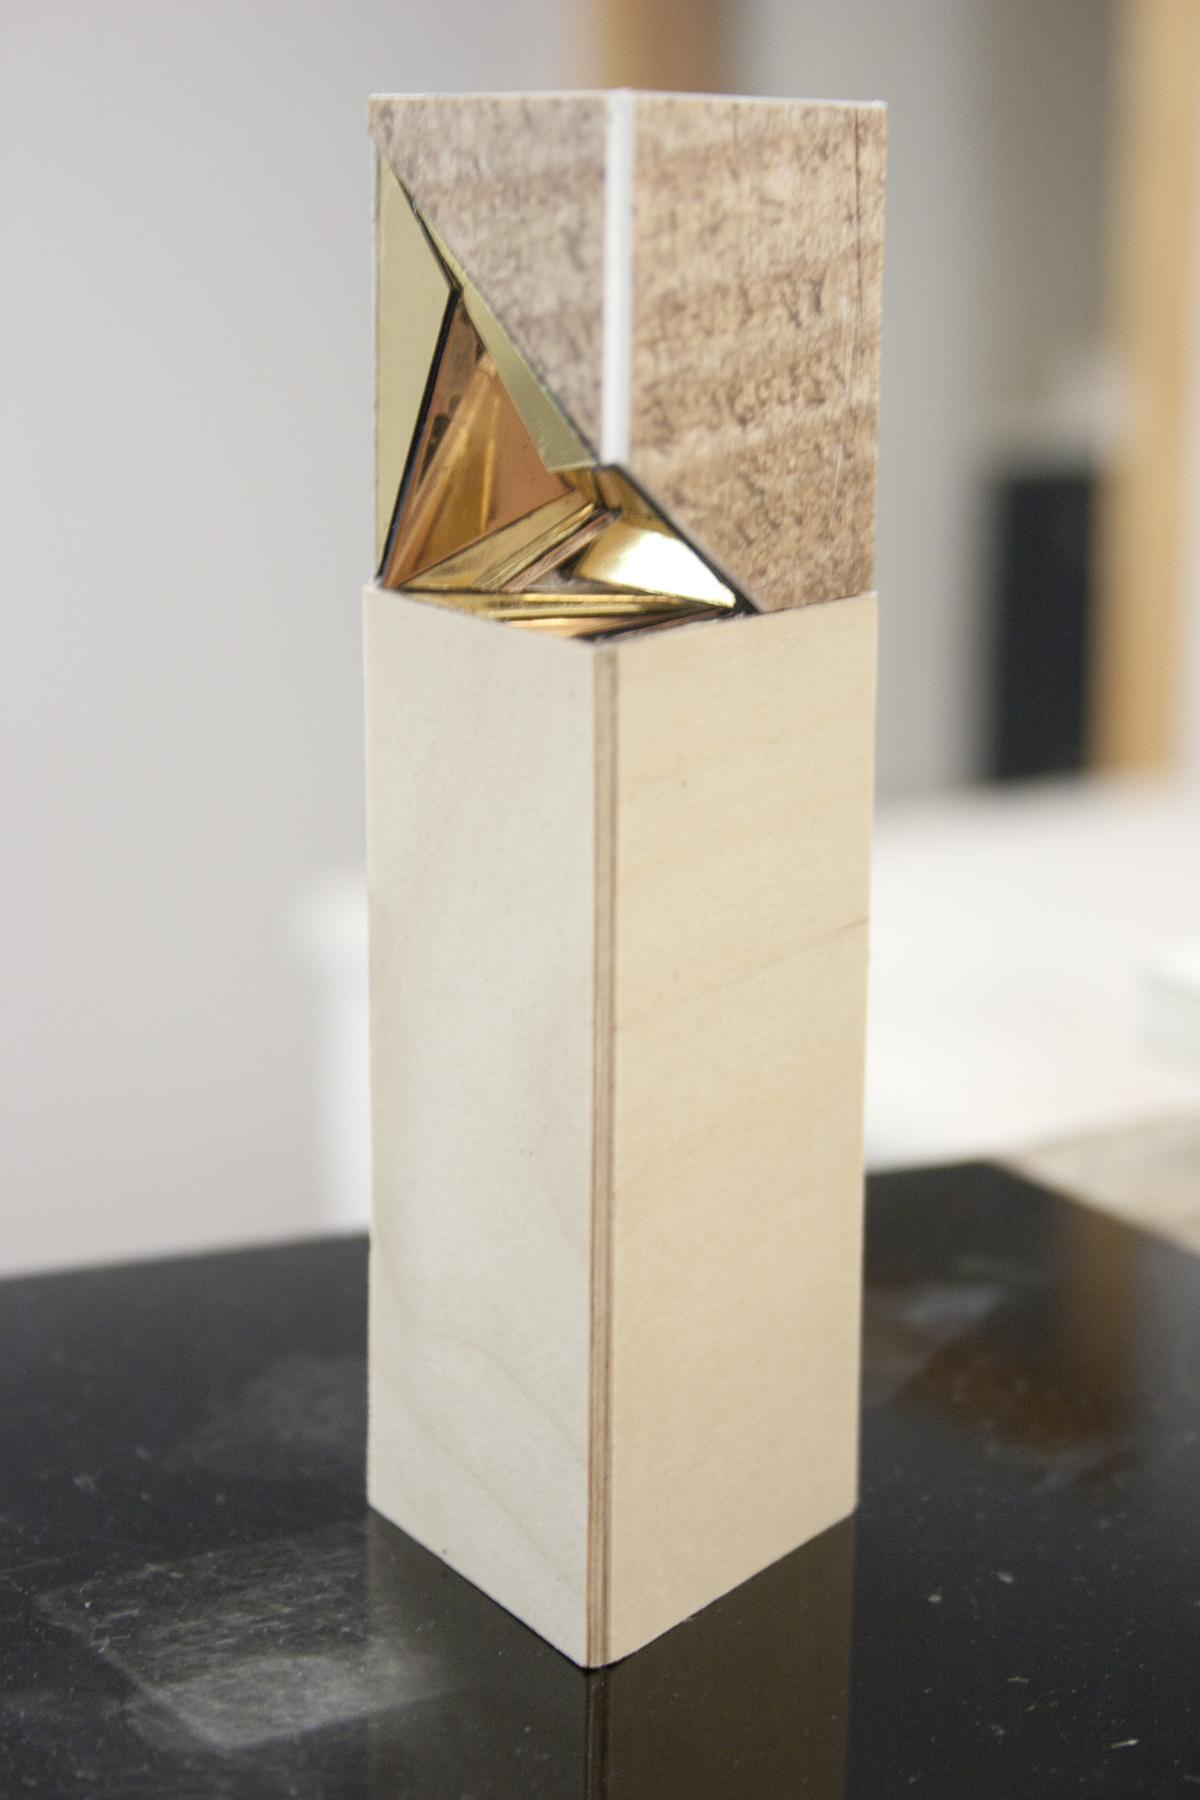 Tyler Vipond, Sculpture, Wood, Gold, Geometric, Toronto, Artist in Residents